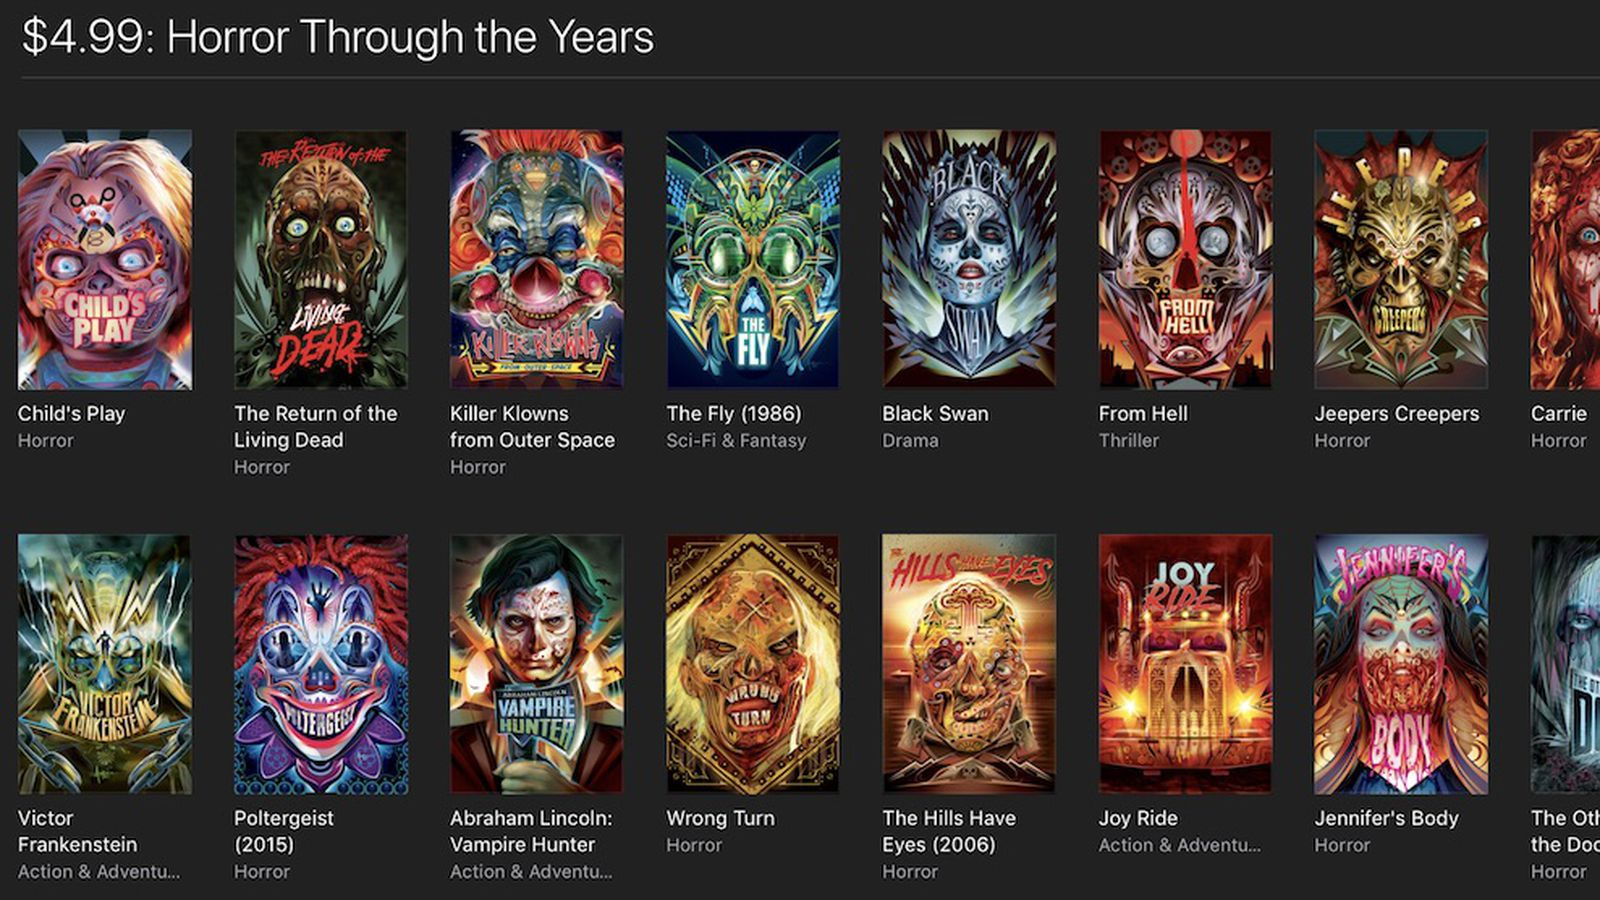 Itunes Celebrates Halloween With Horror Movie Sale Of 5 Classics And 10 Modern Films Macrumors